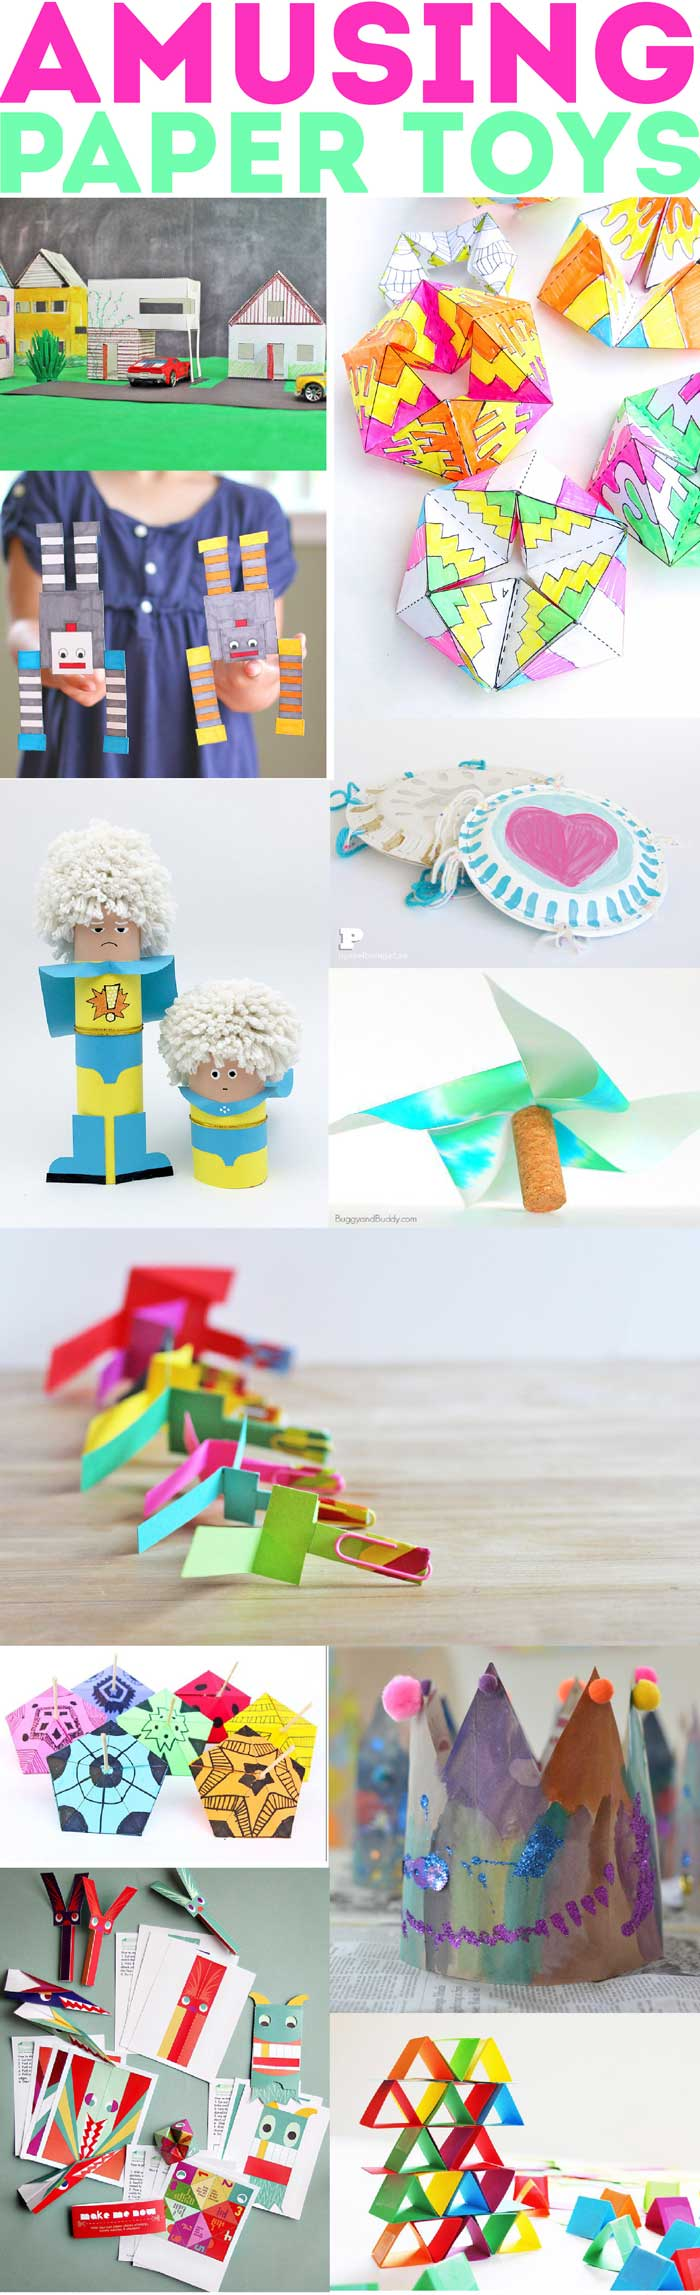 60+ amazing paper crafts for kids (and adults) to make! Paper Toy projects